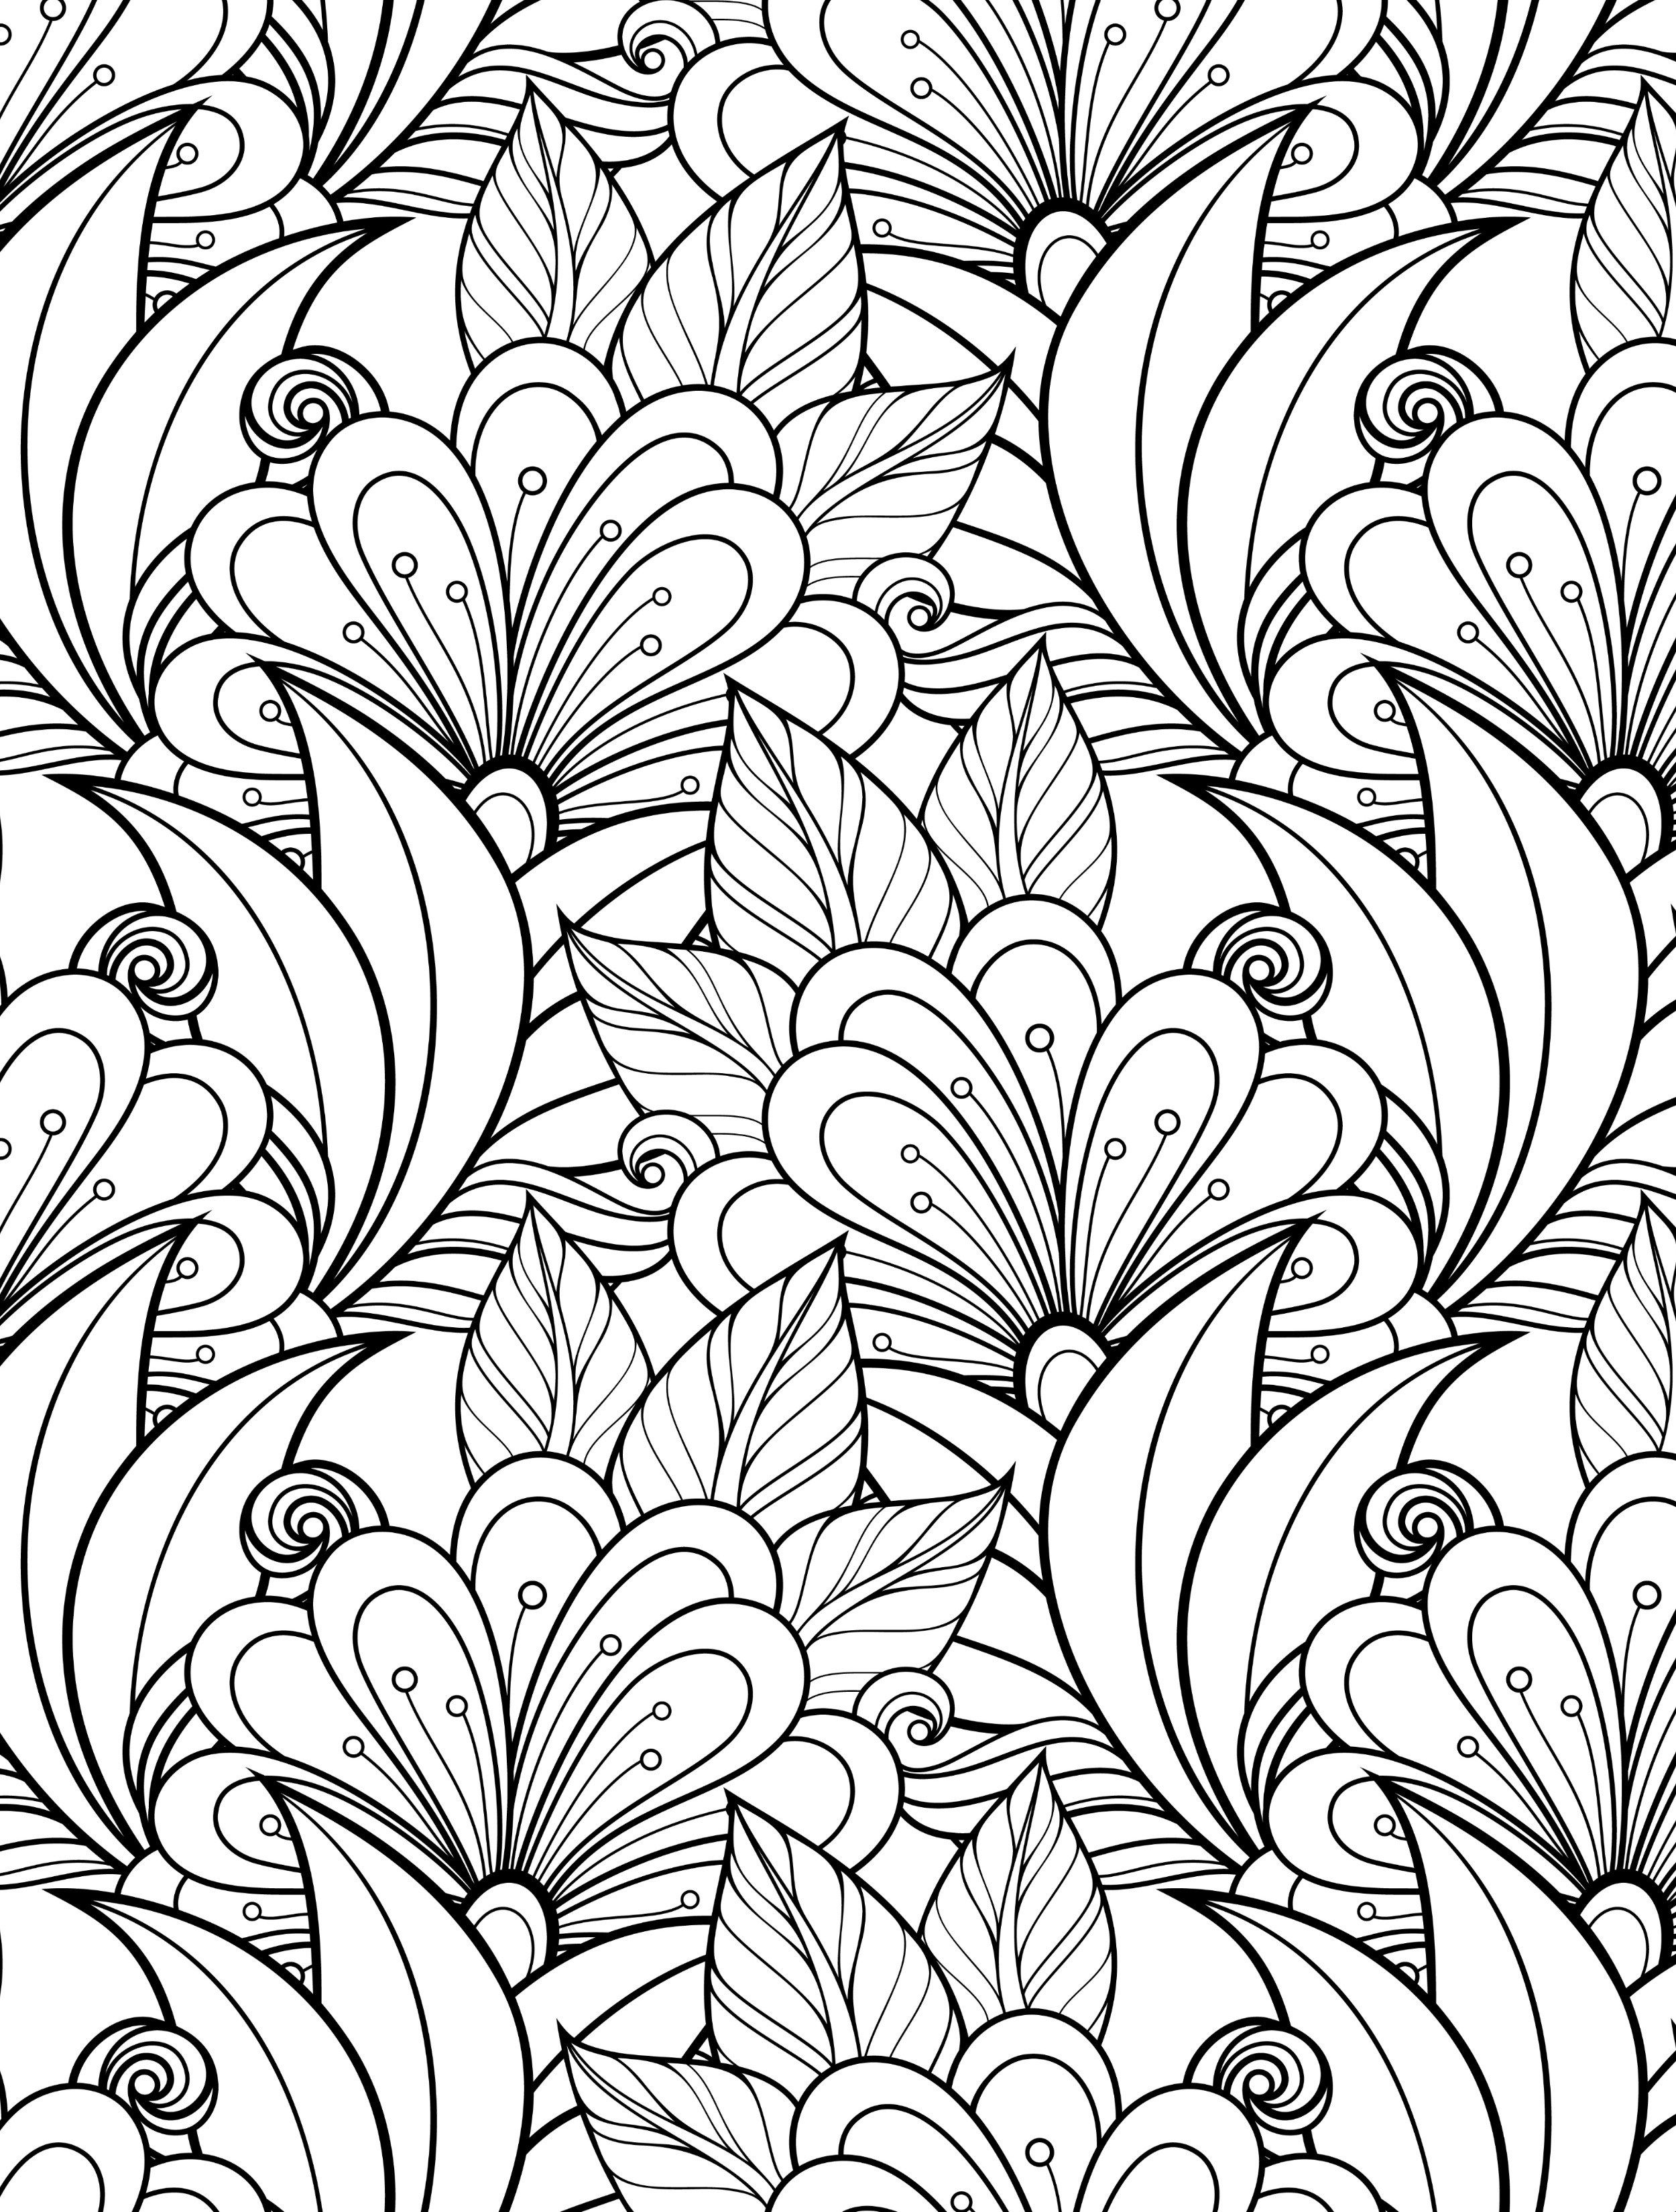 The botany coloring book pdf - 24 More Free Printable Adult Coloring Pages Page 7 Of 25